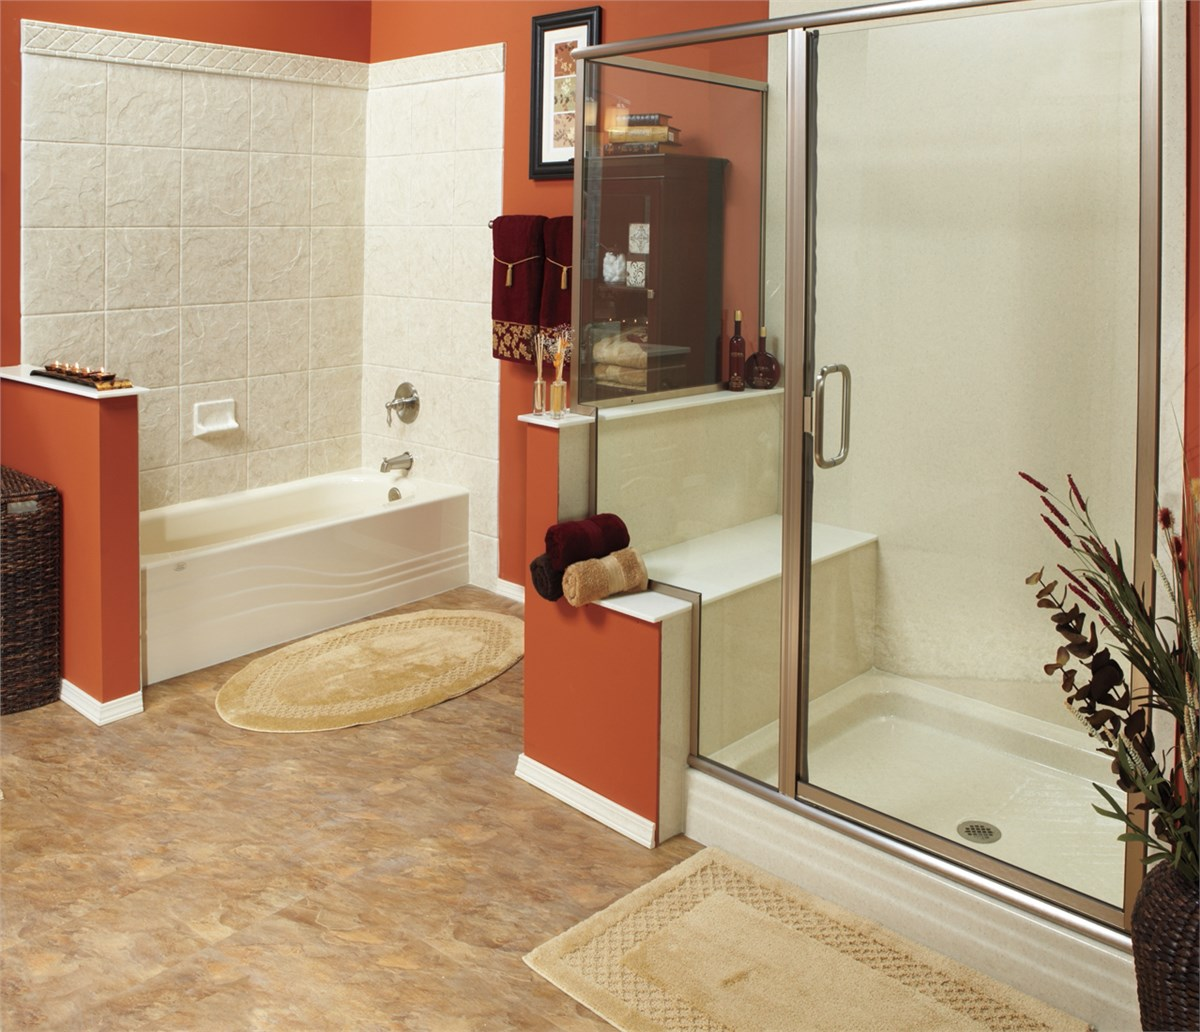 Bathroom Remodel Albuquerque Brilliant Albuquerque Nm Bathroom Remodeling  Albuquerque Bathroom . Decorating Design